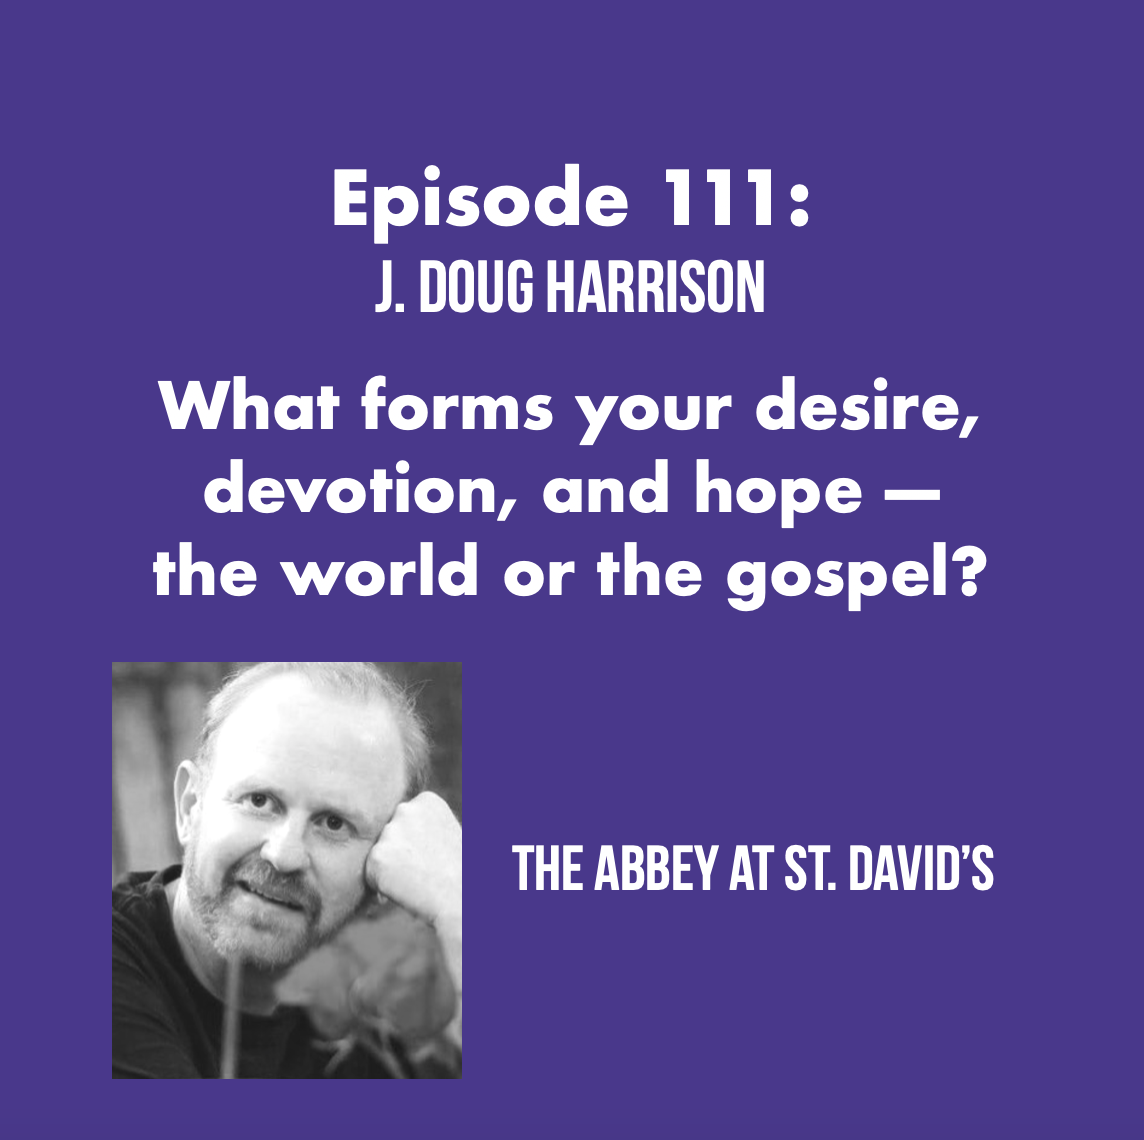 What forms your desire, devotion, and hope – the world or the gospel? with J. Doug Harrison